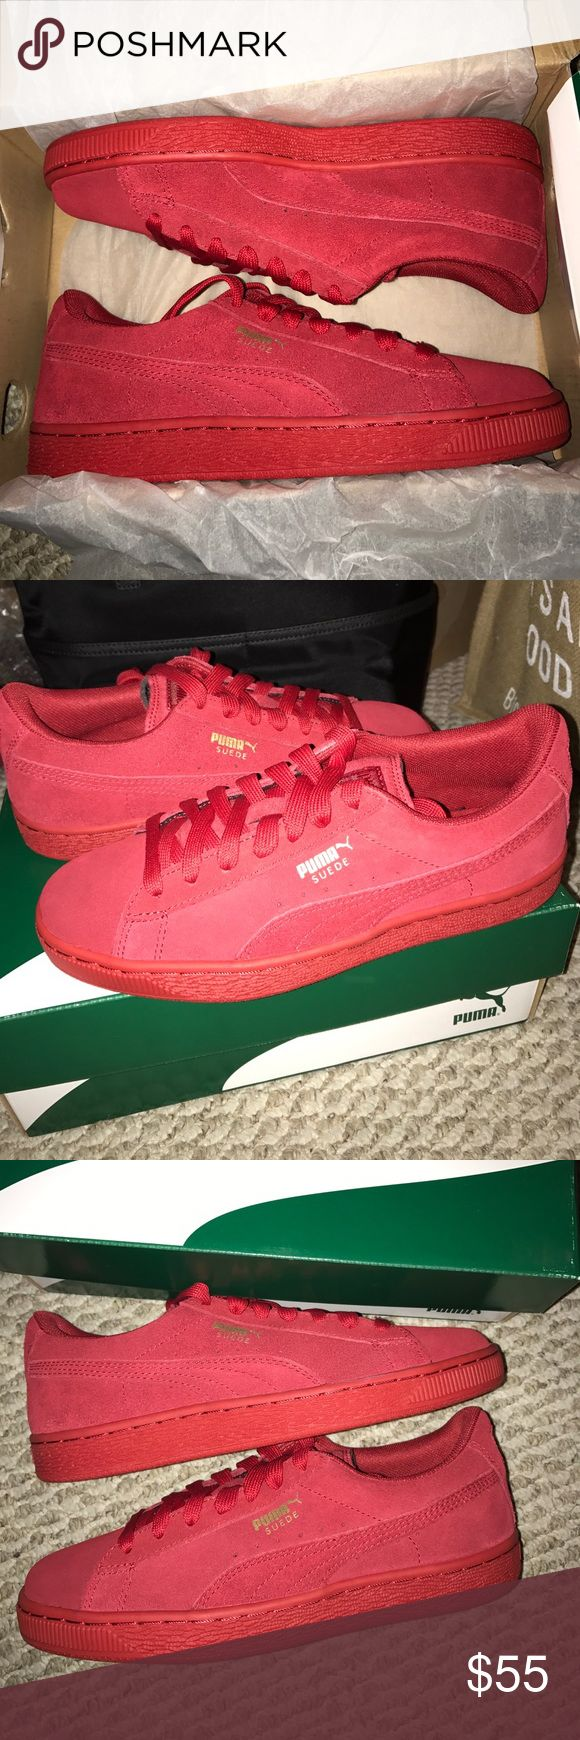 Brandnew 🍒 Barbados Cherry-Gold 🍒 BNWOT Barbados Cherry Red -Gold Puma sneaker. This kicks are literallllyyyy in fire 🔥 Puma Shoes Sneakers